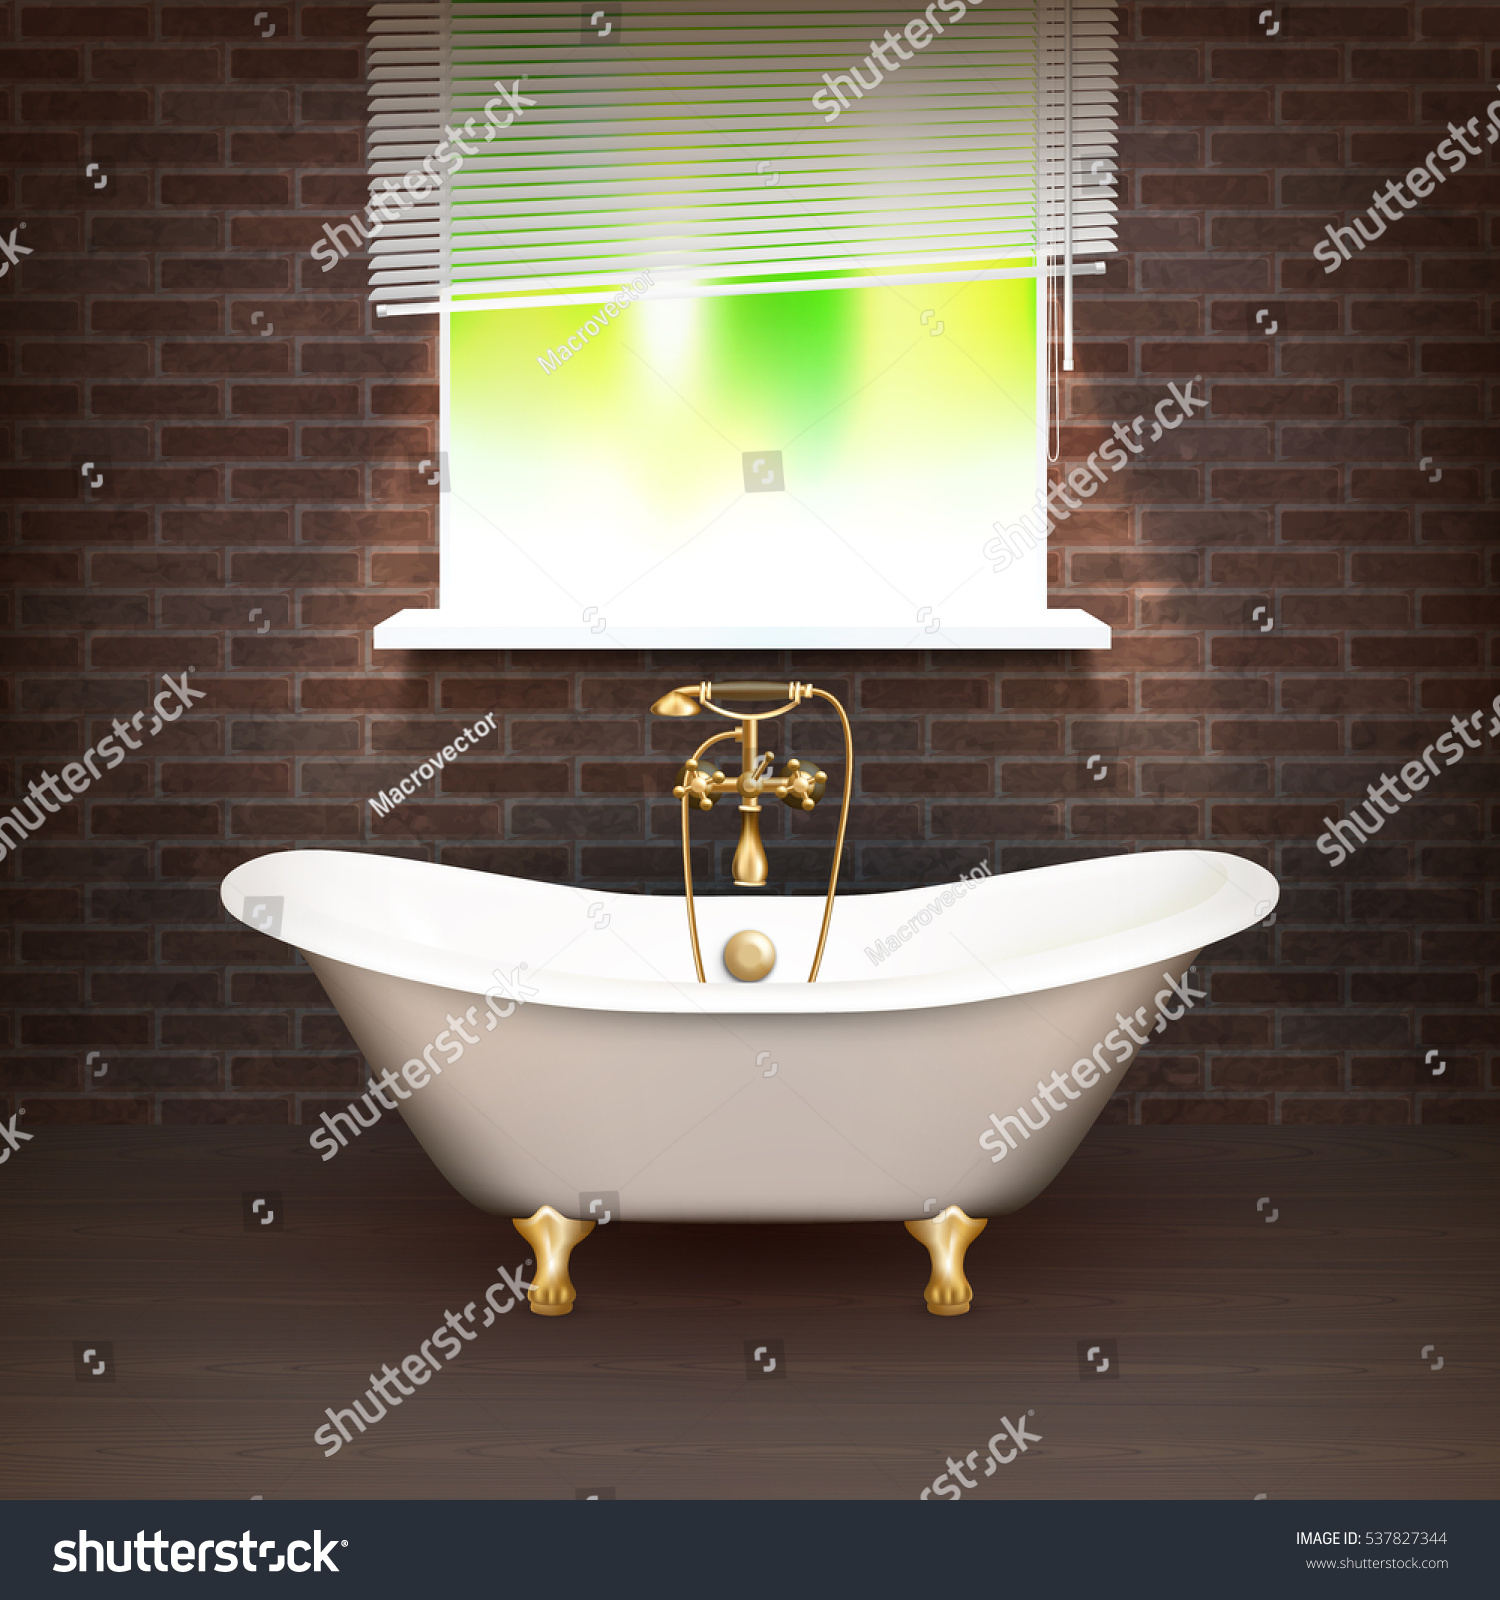 Realistic Bathroom Poster With Vintage Bathtub On Wooden Floor And A Brick Wall Across From The